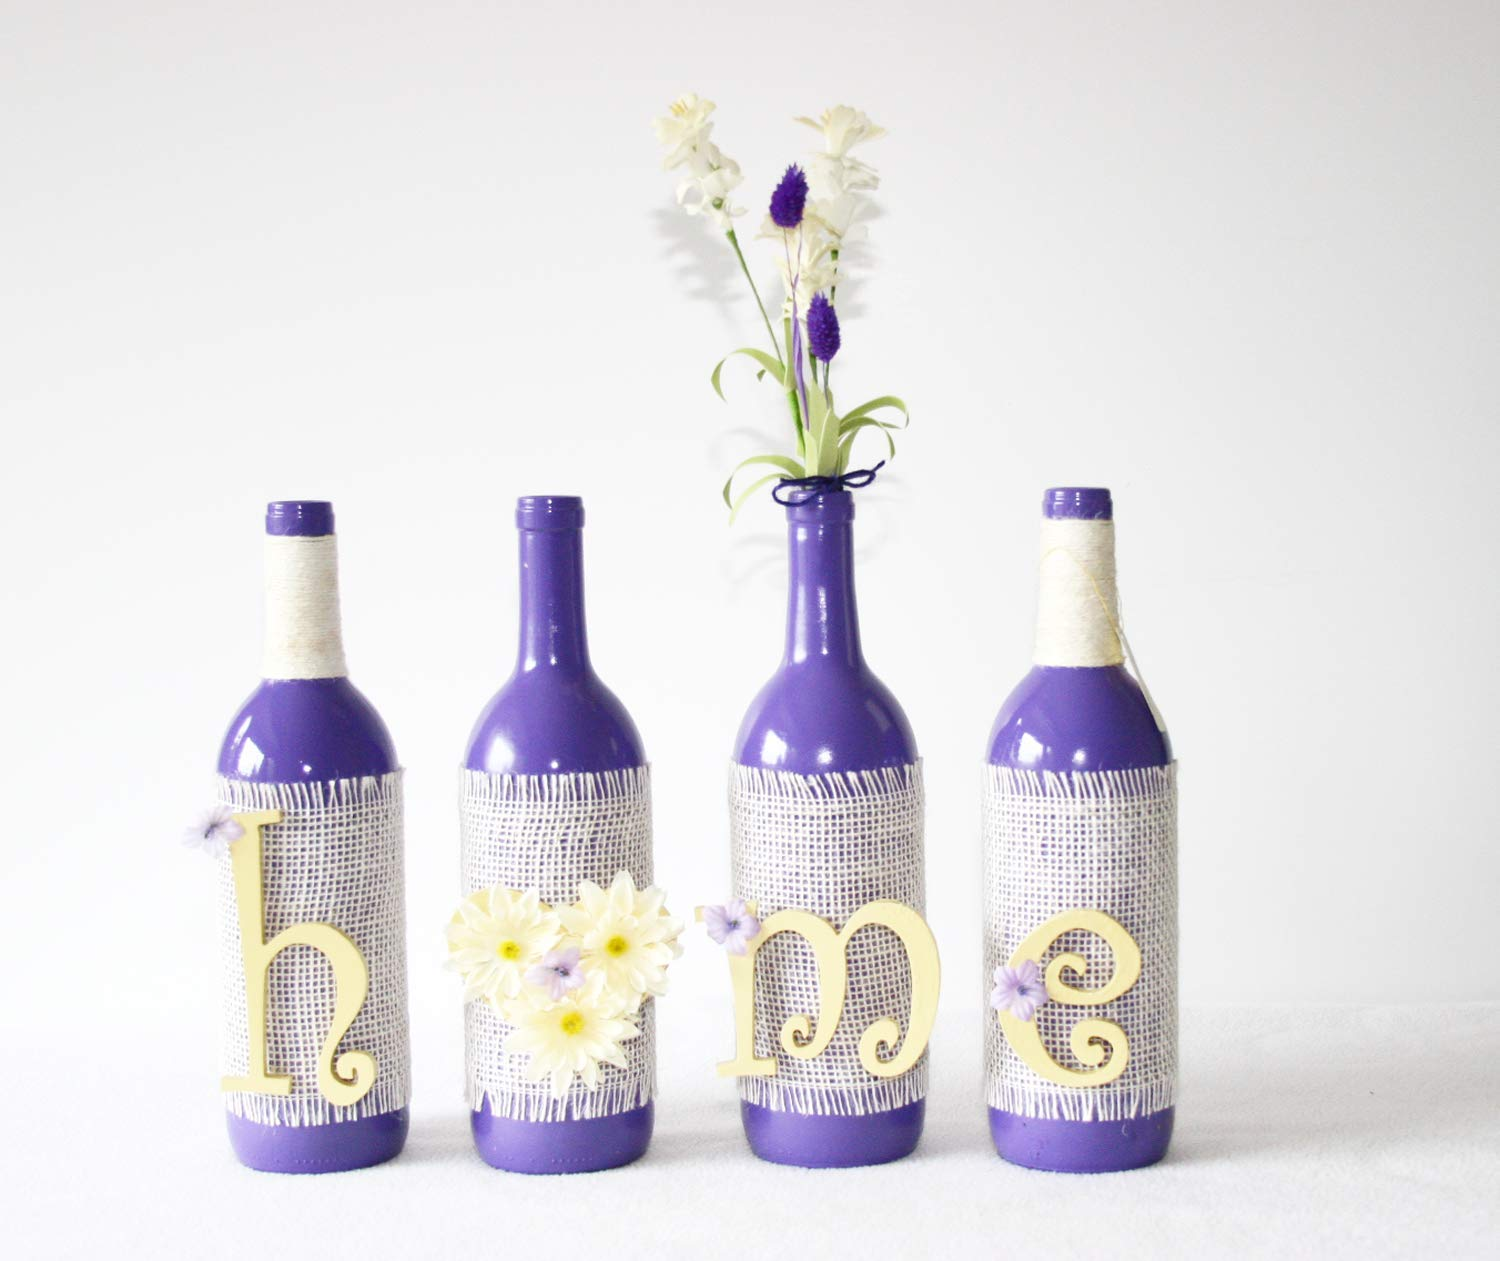 Decorated Wine Bottles Home Script Display Purple And Yellow Altered Bottle Handmade Vase Home Decor Centerpiece Floral Handmade